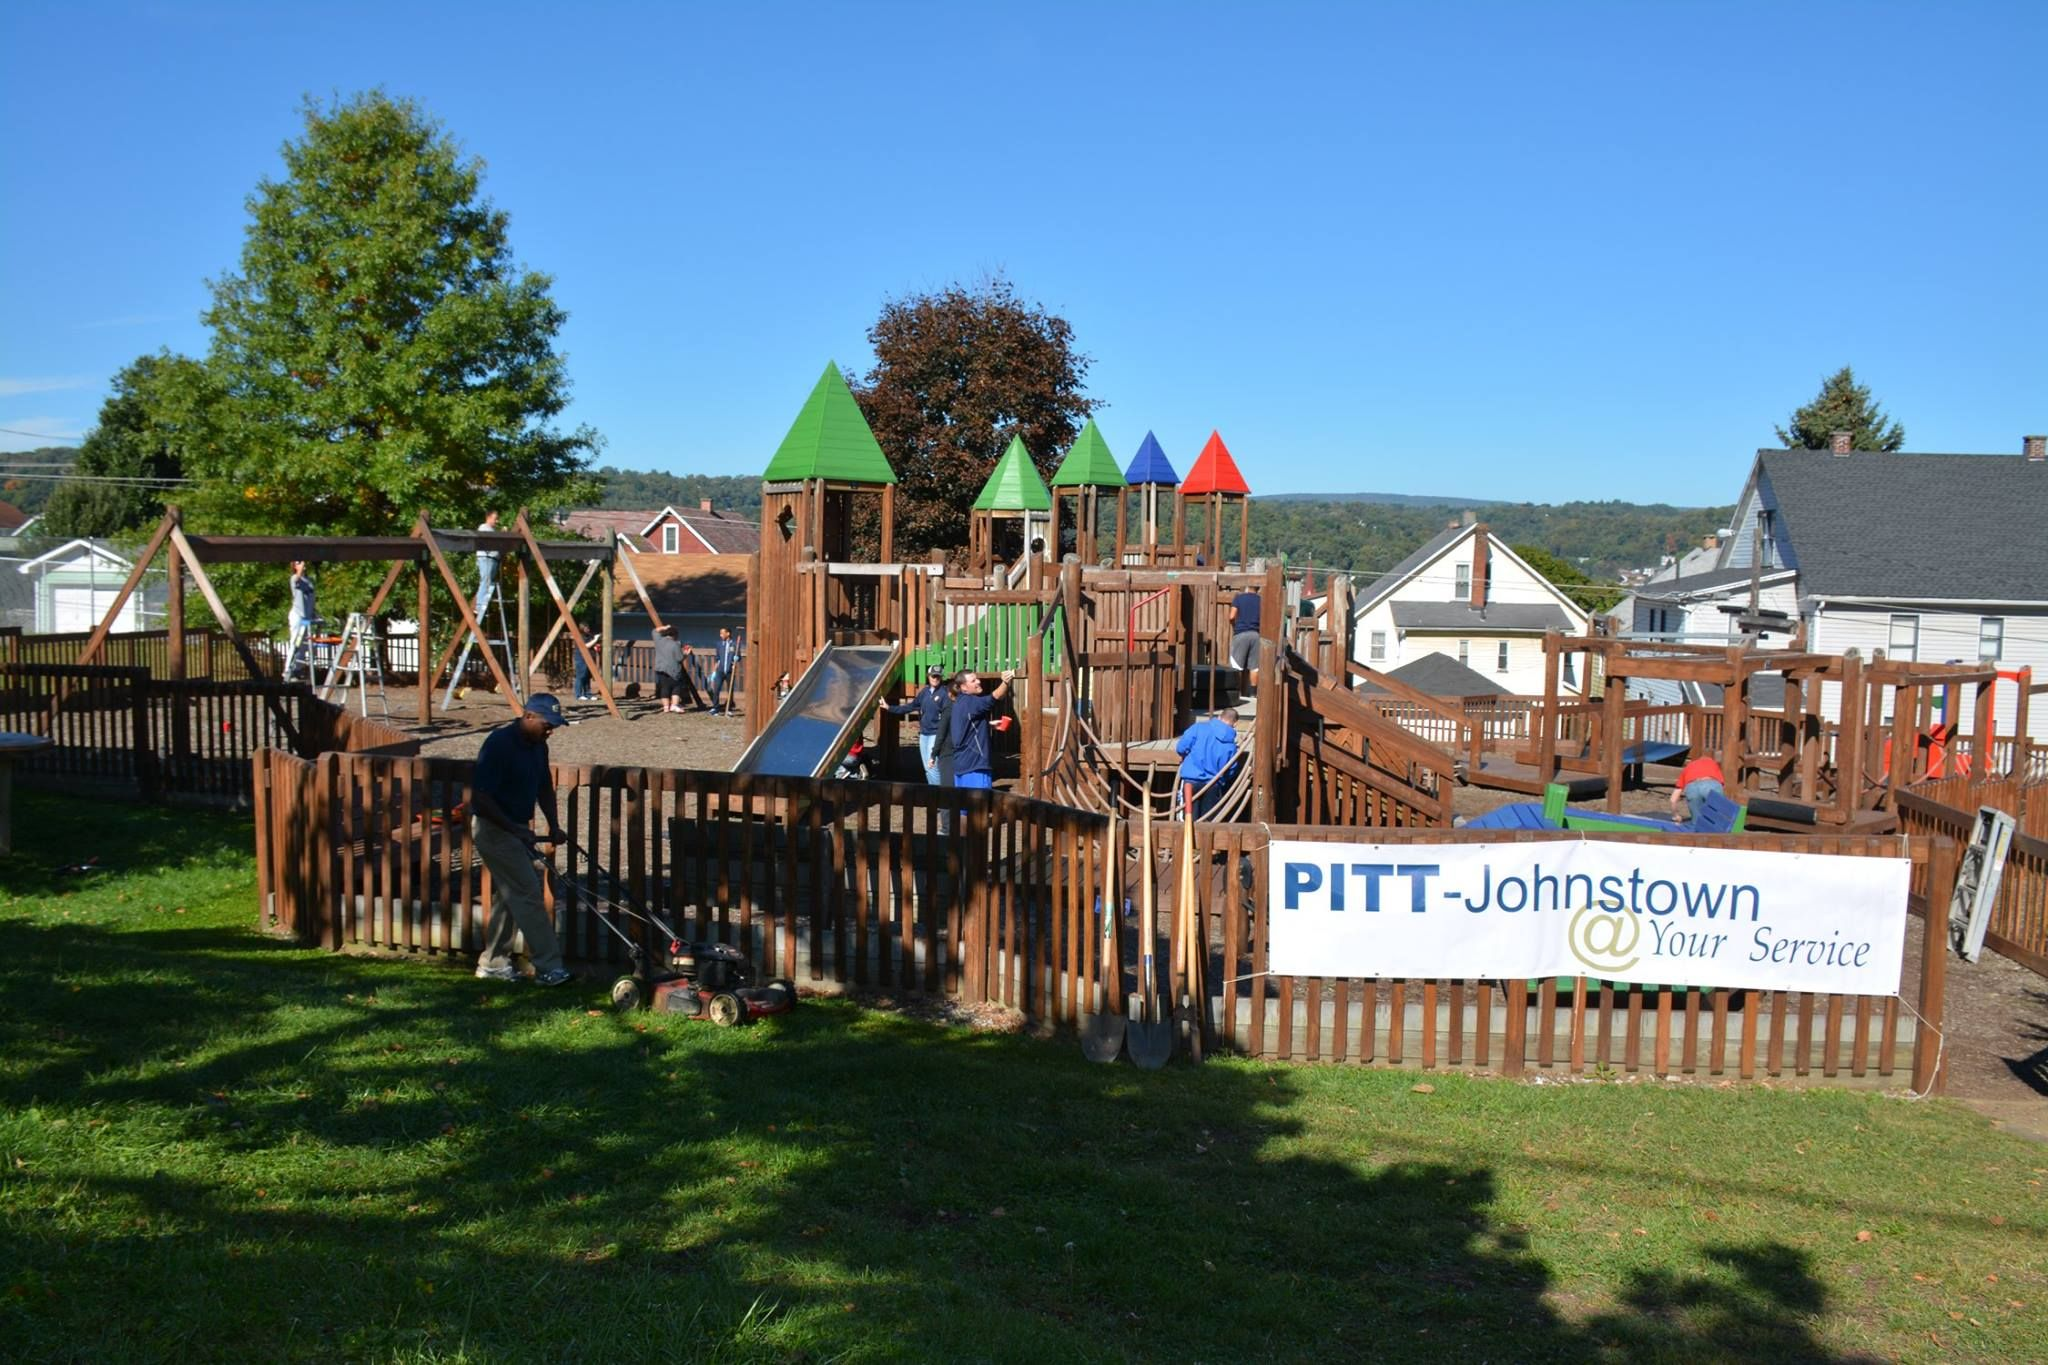 PittJohnstown Community service project features the